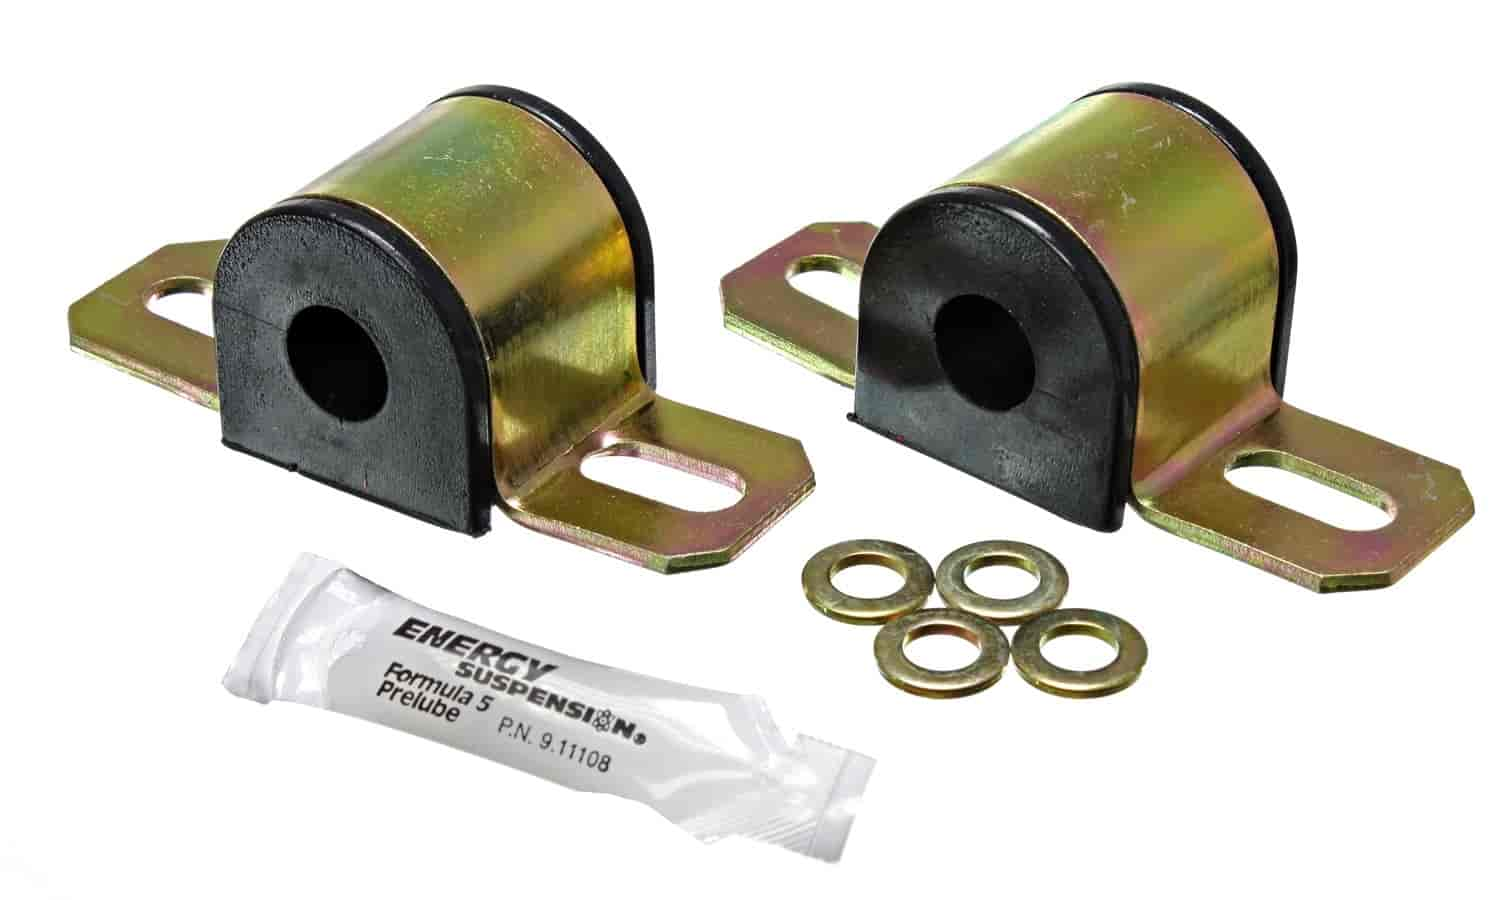 Energy Suspension 9-5105G - Energy Suspension Universal Non-Greaseable Sway Bar Bushings